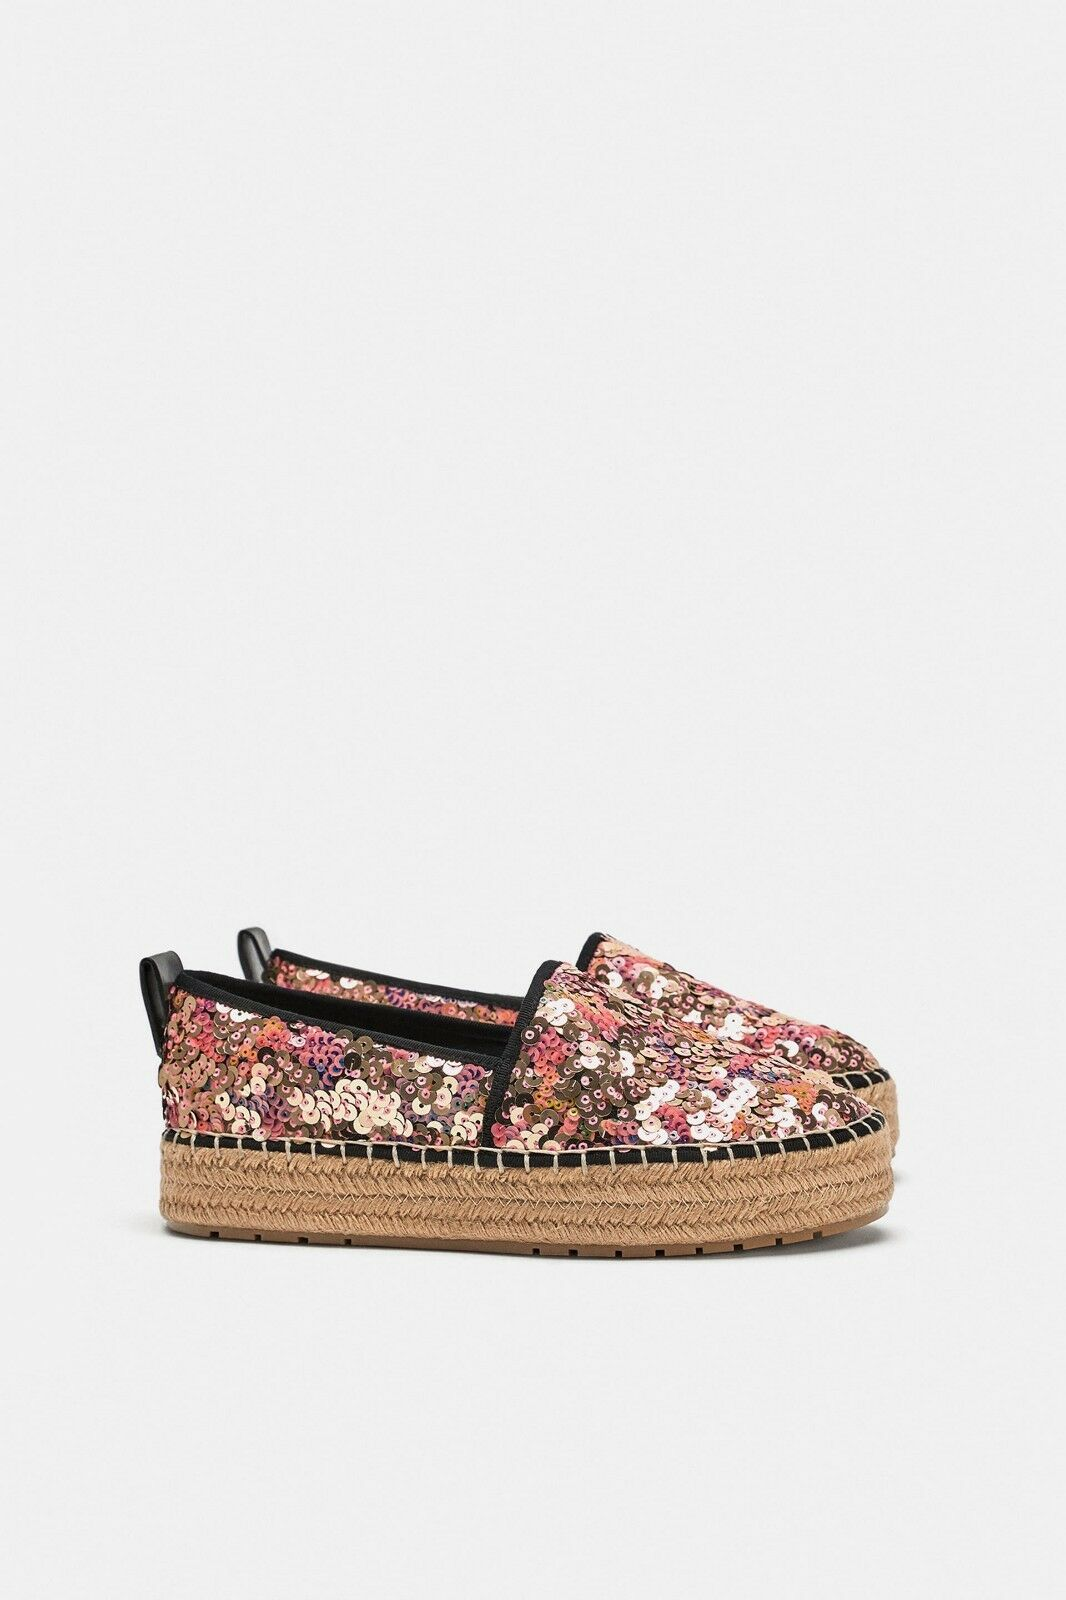 ZARA NEW WOMAN SEQUINNED ESPADRILLES REF. 7500 7500 7500 301 SIZE EUR 41 8c8b7c